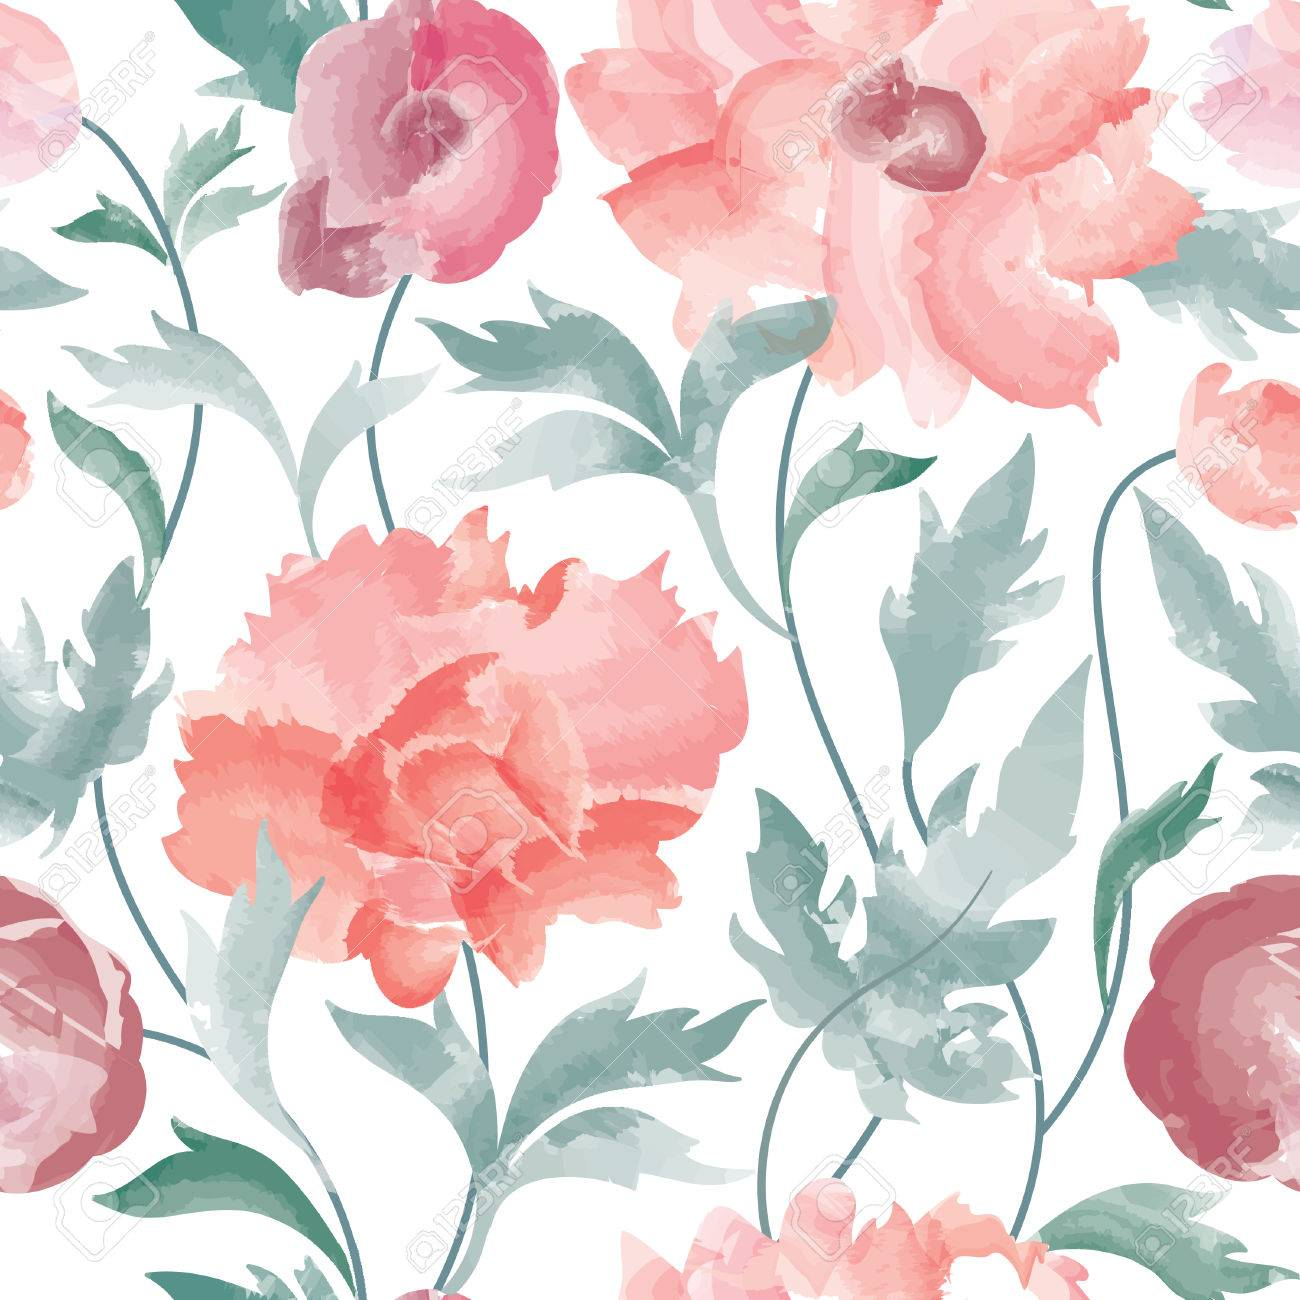 Floral seamless pattern Flower background. Floral tile ornamental texture with flowers Spring flourish garden watercolor wallpaper - 56202266